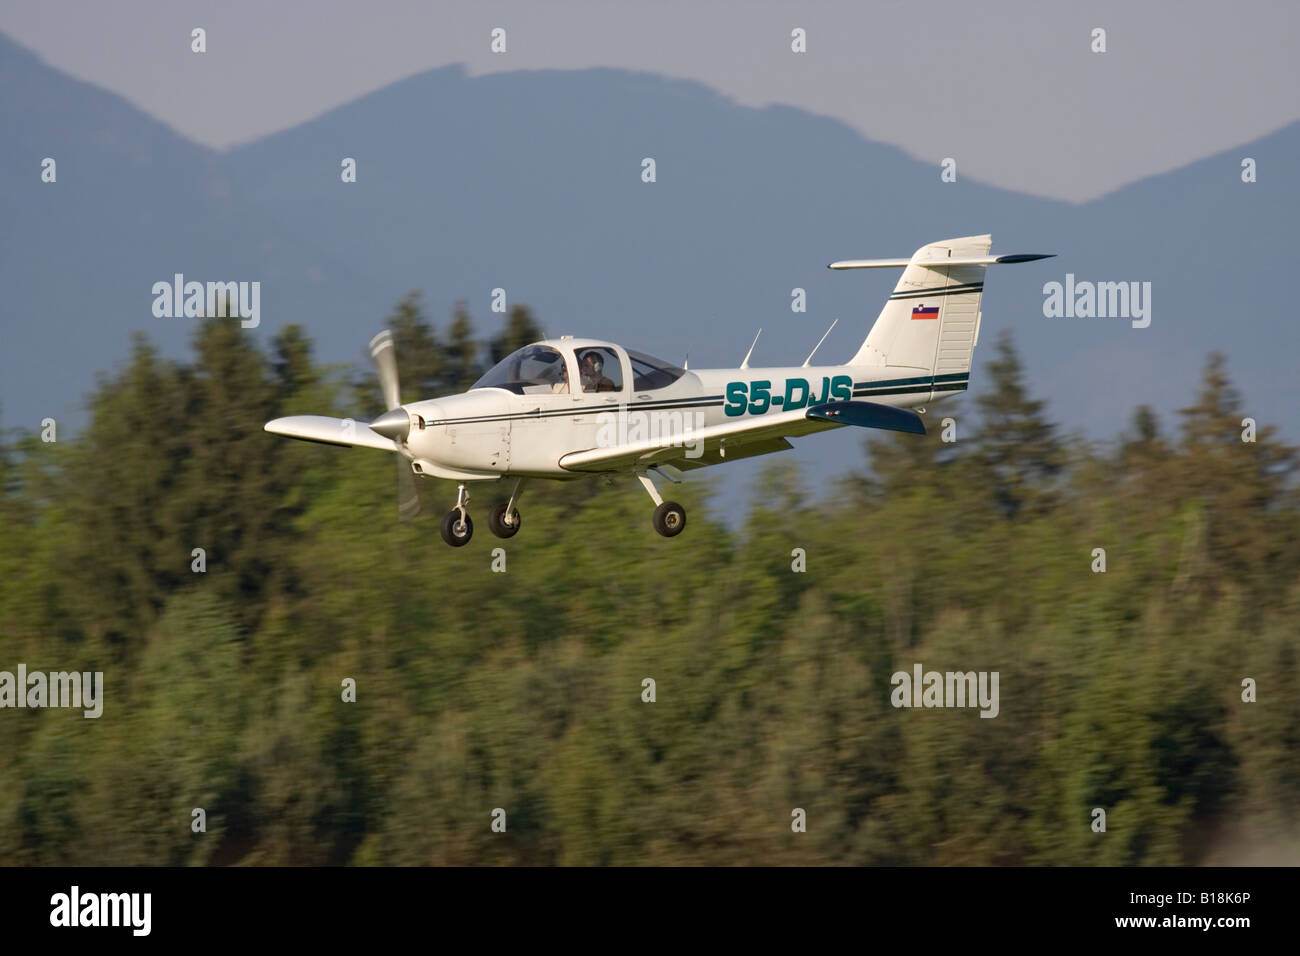 Piper PA-38 Tomahawk single engine light plane landing at Ljubljana Airport - Stock Image